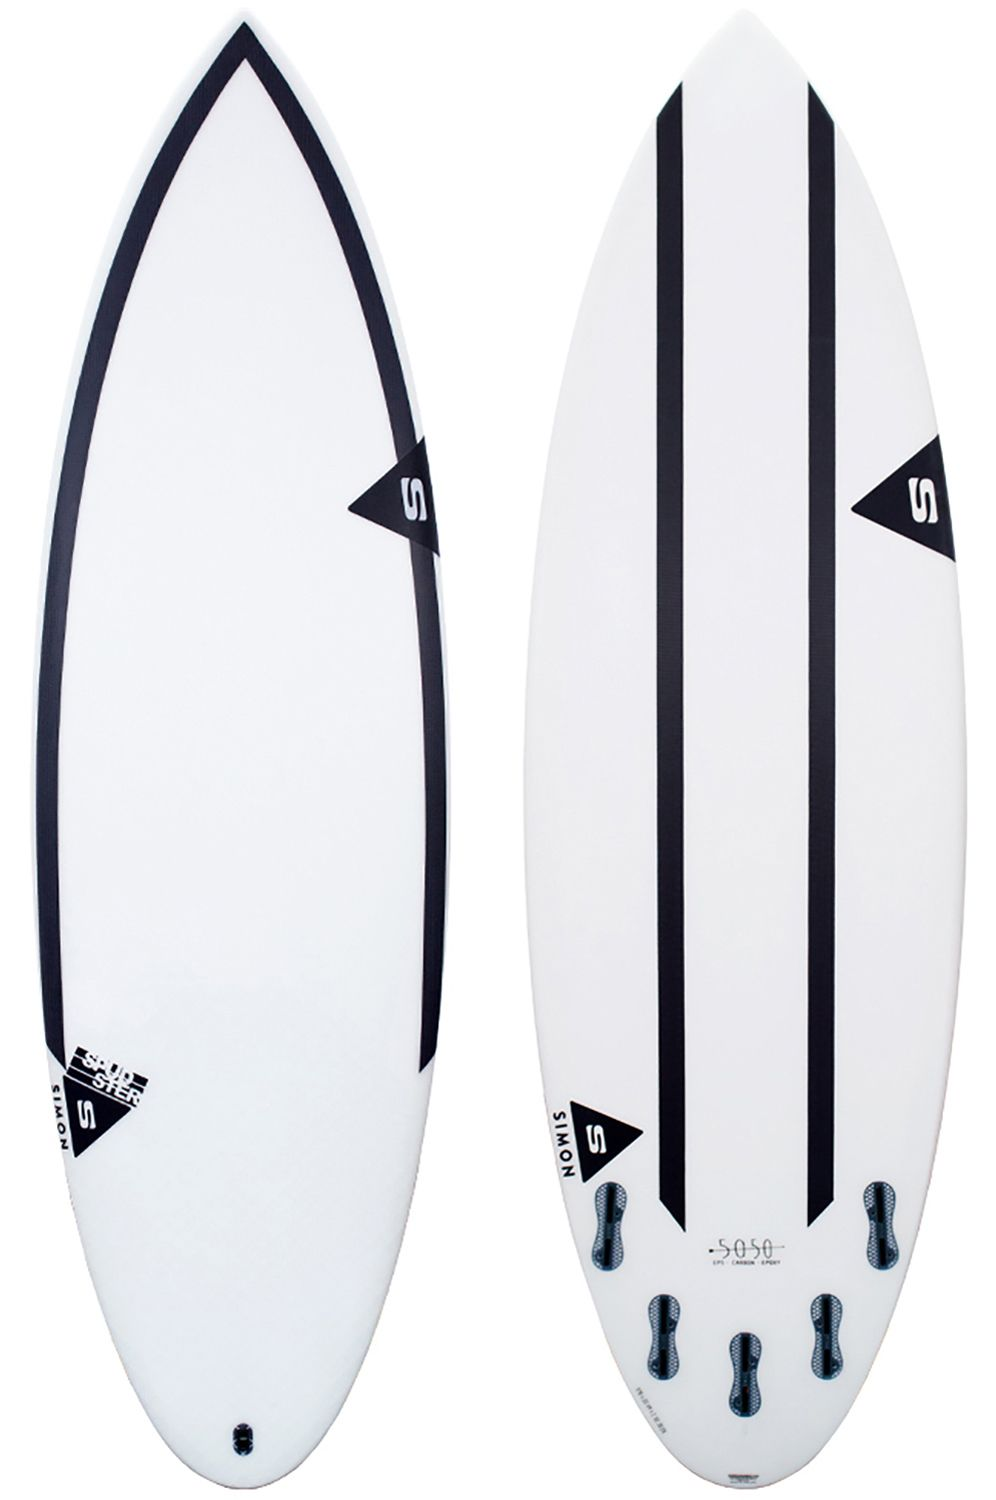 Prancha Surf Simon Anderson SPUDSTER 5'6 Round Tail - White FCS II Multisystem 5ft6